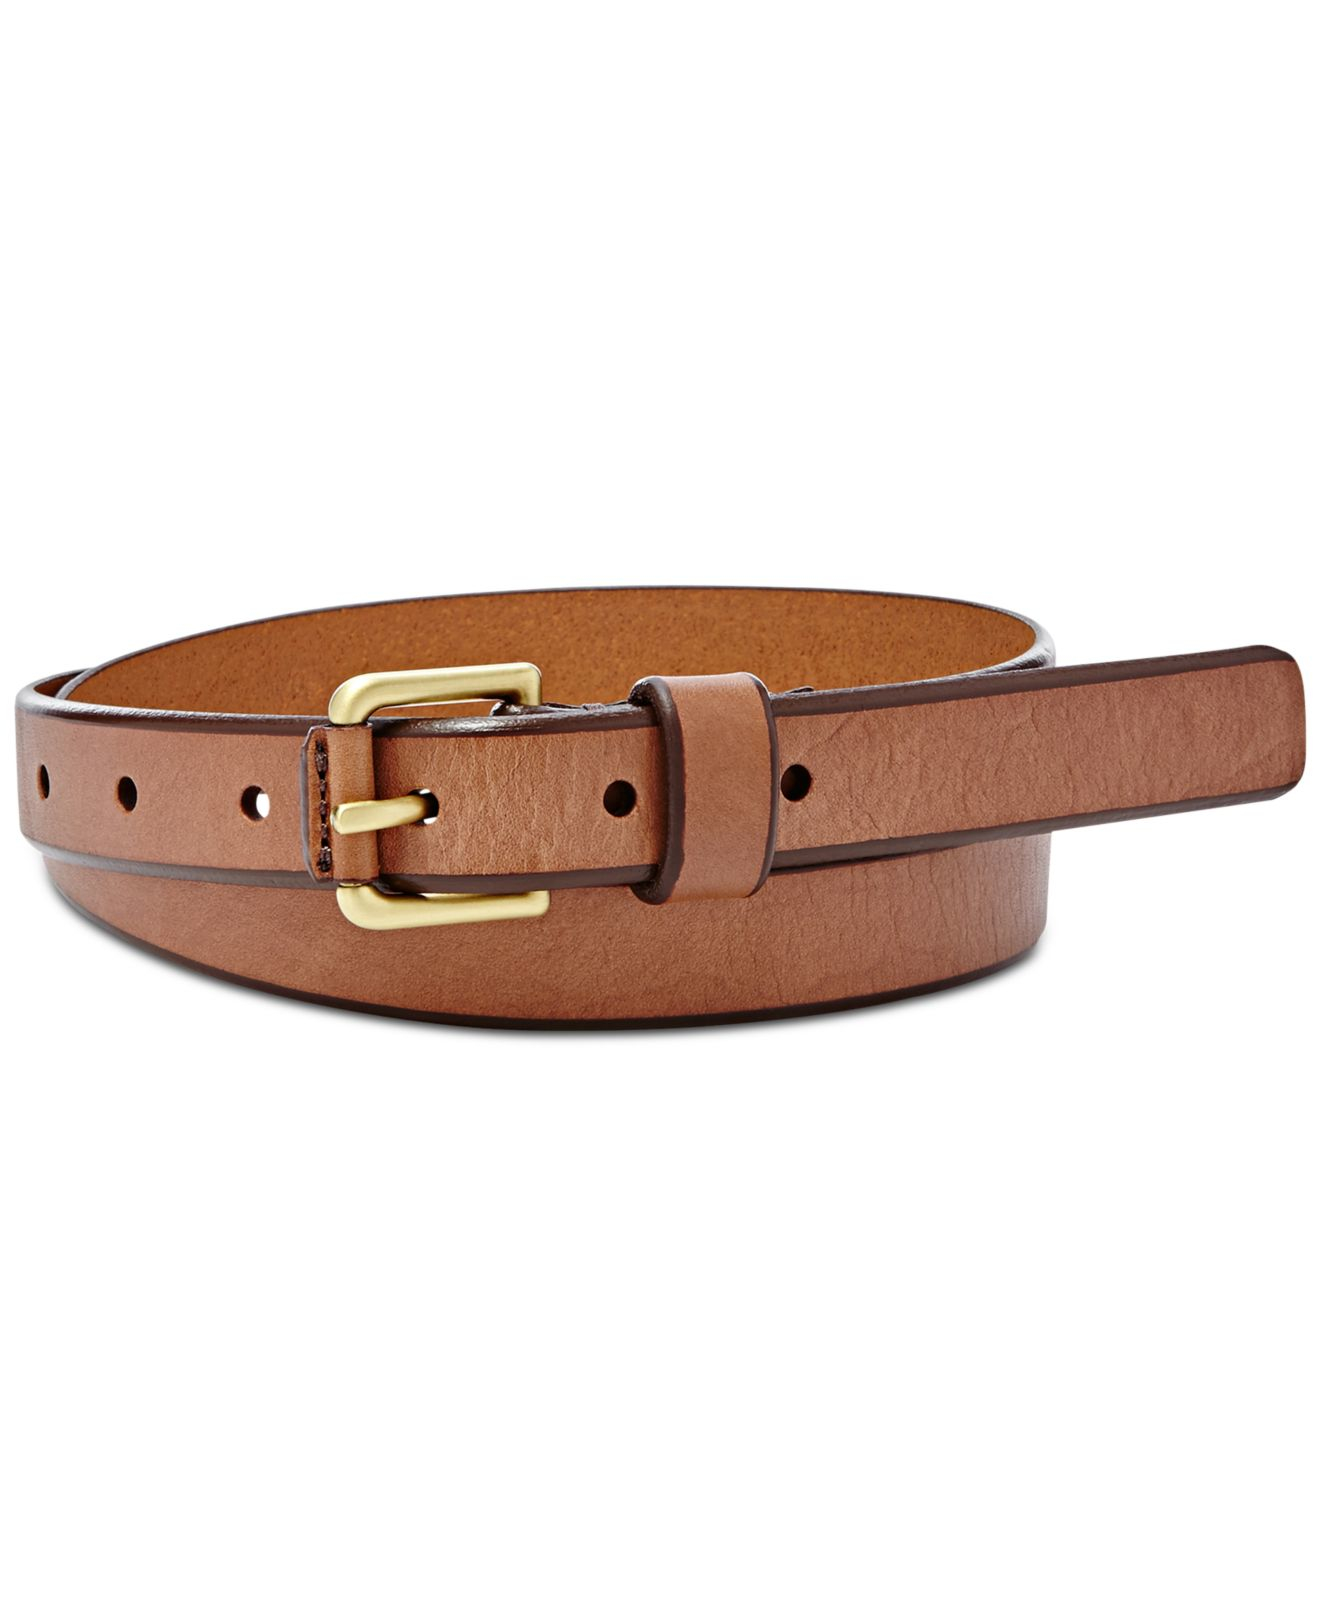 fossil explorer buckle leather belt in brown lyst